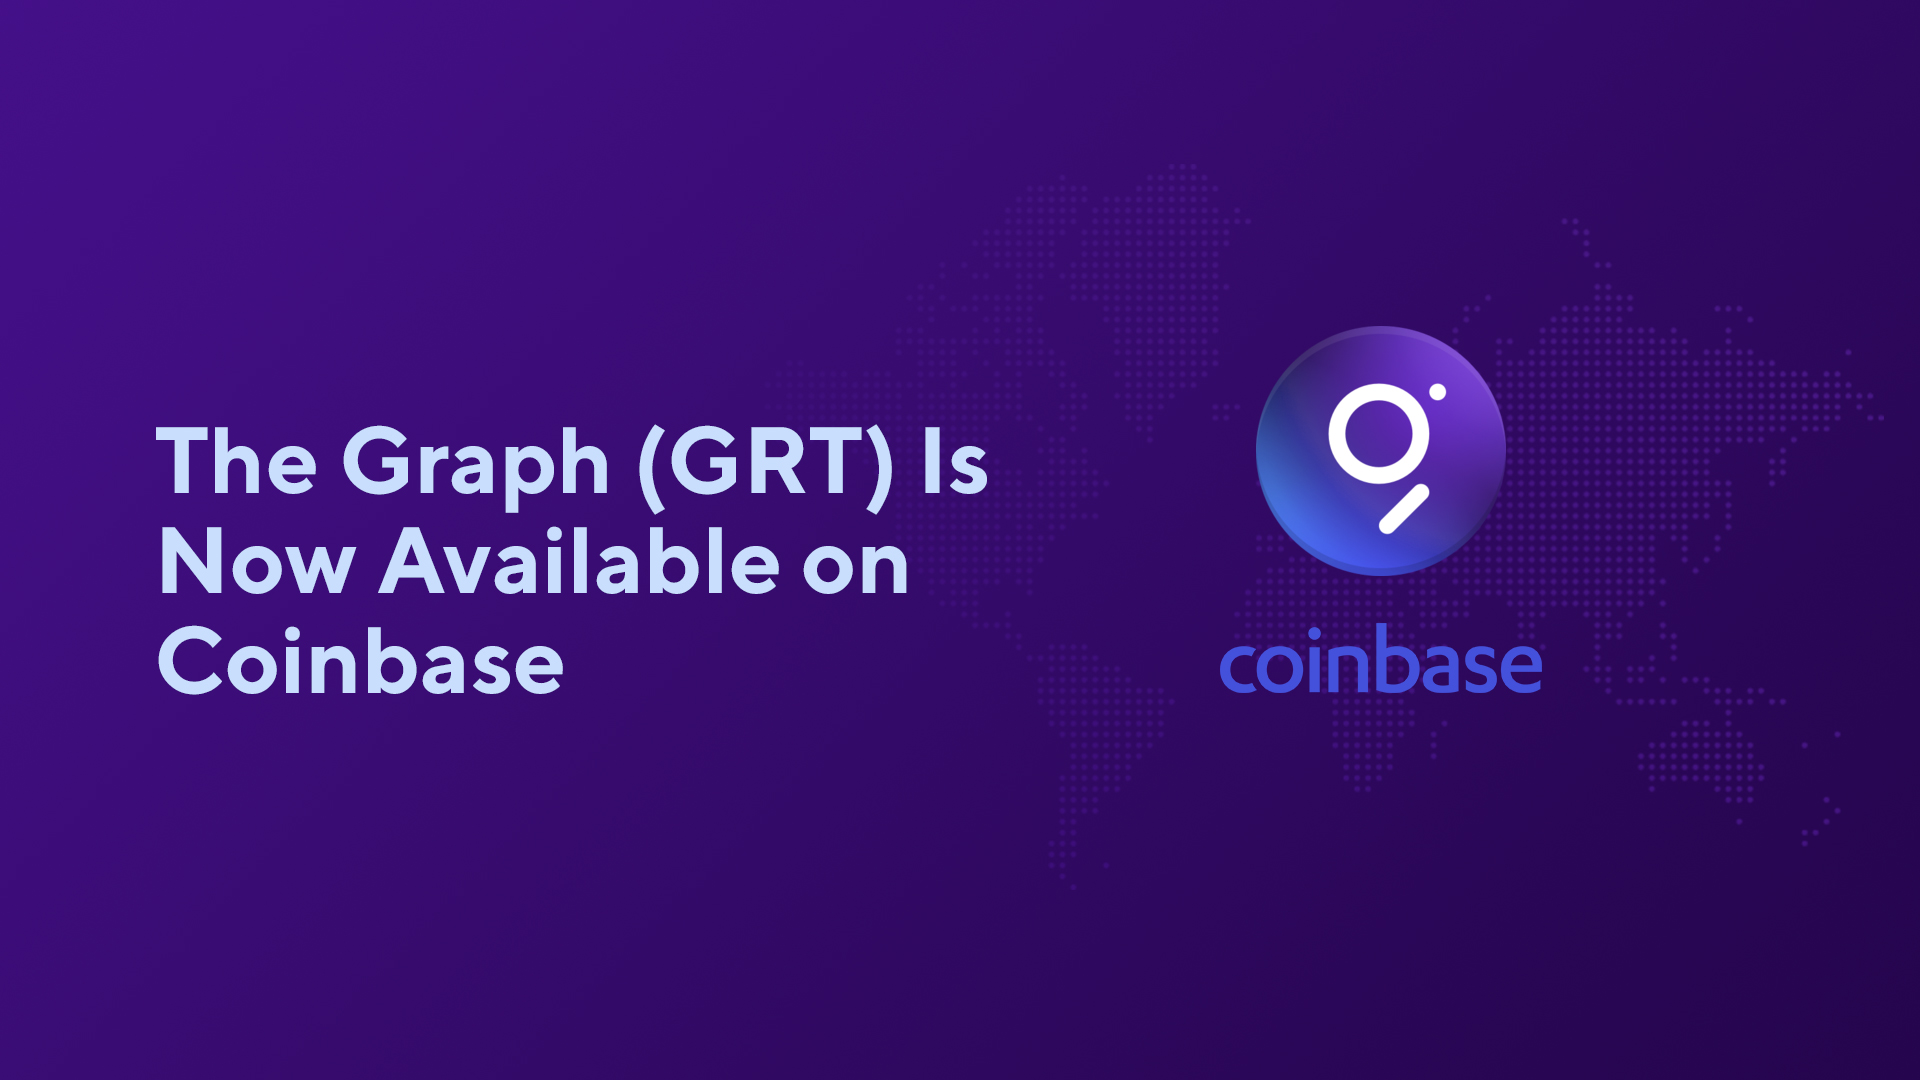 The Graph (GRT) Is Now Available on Coinbase